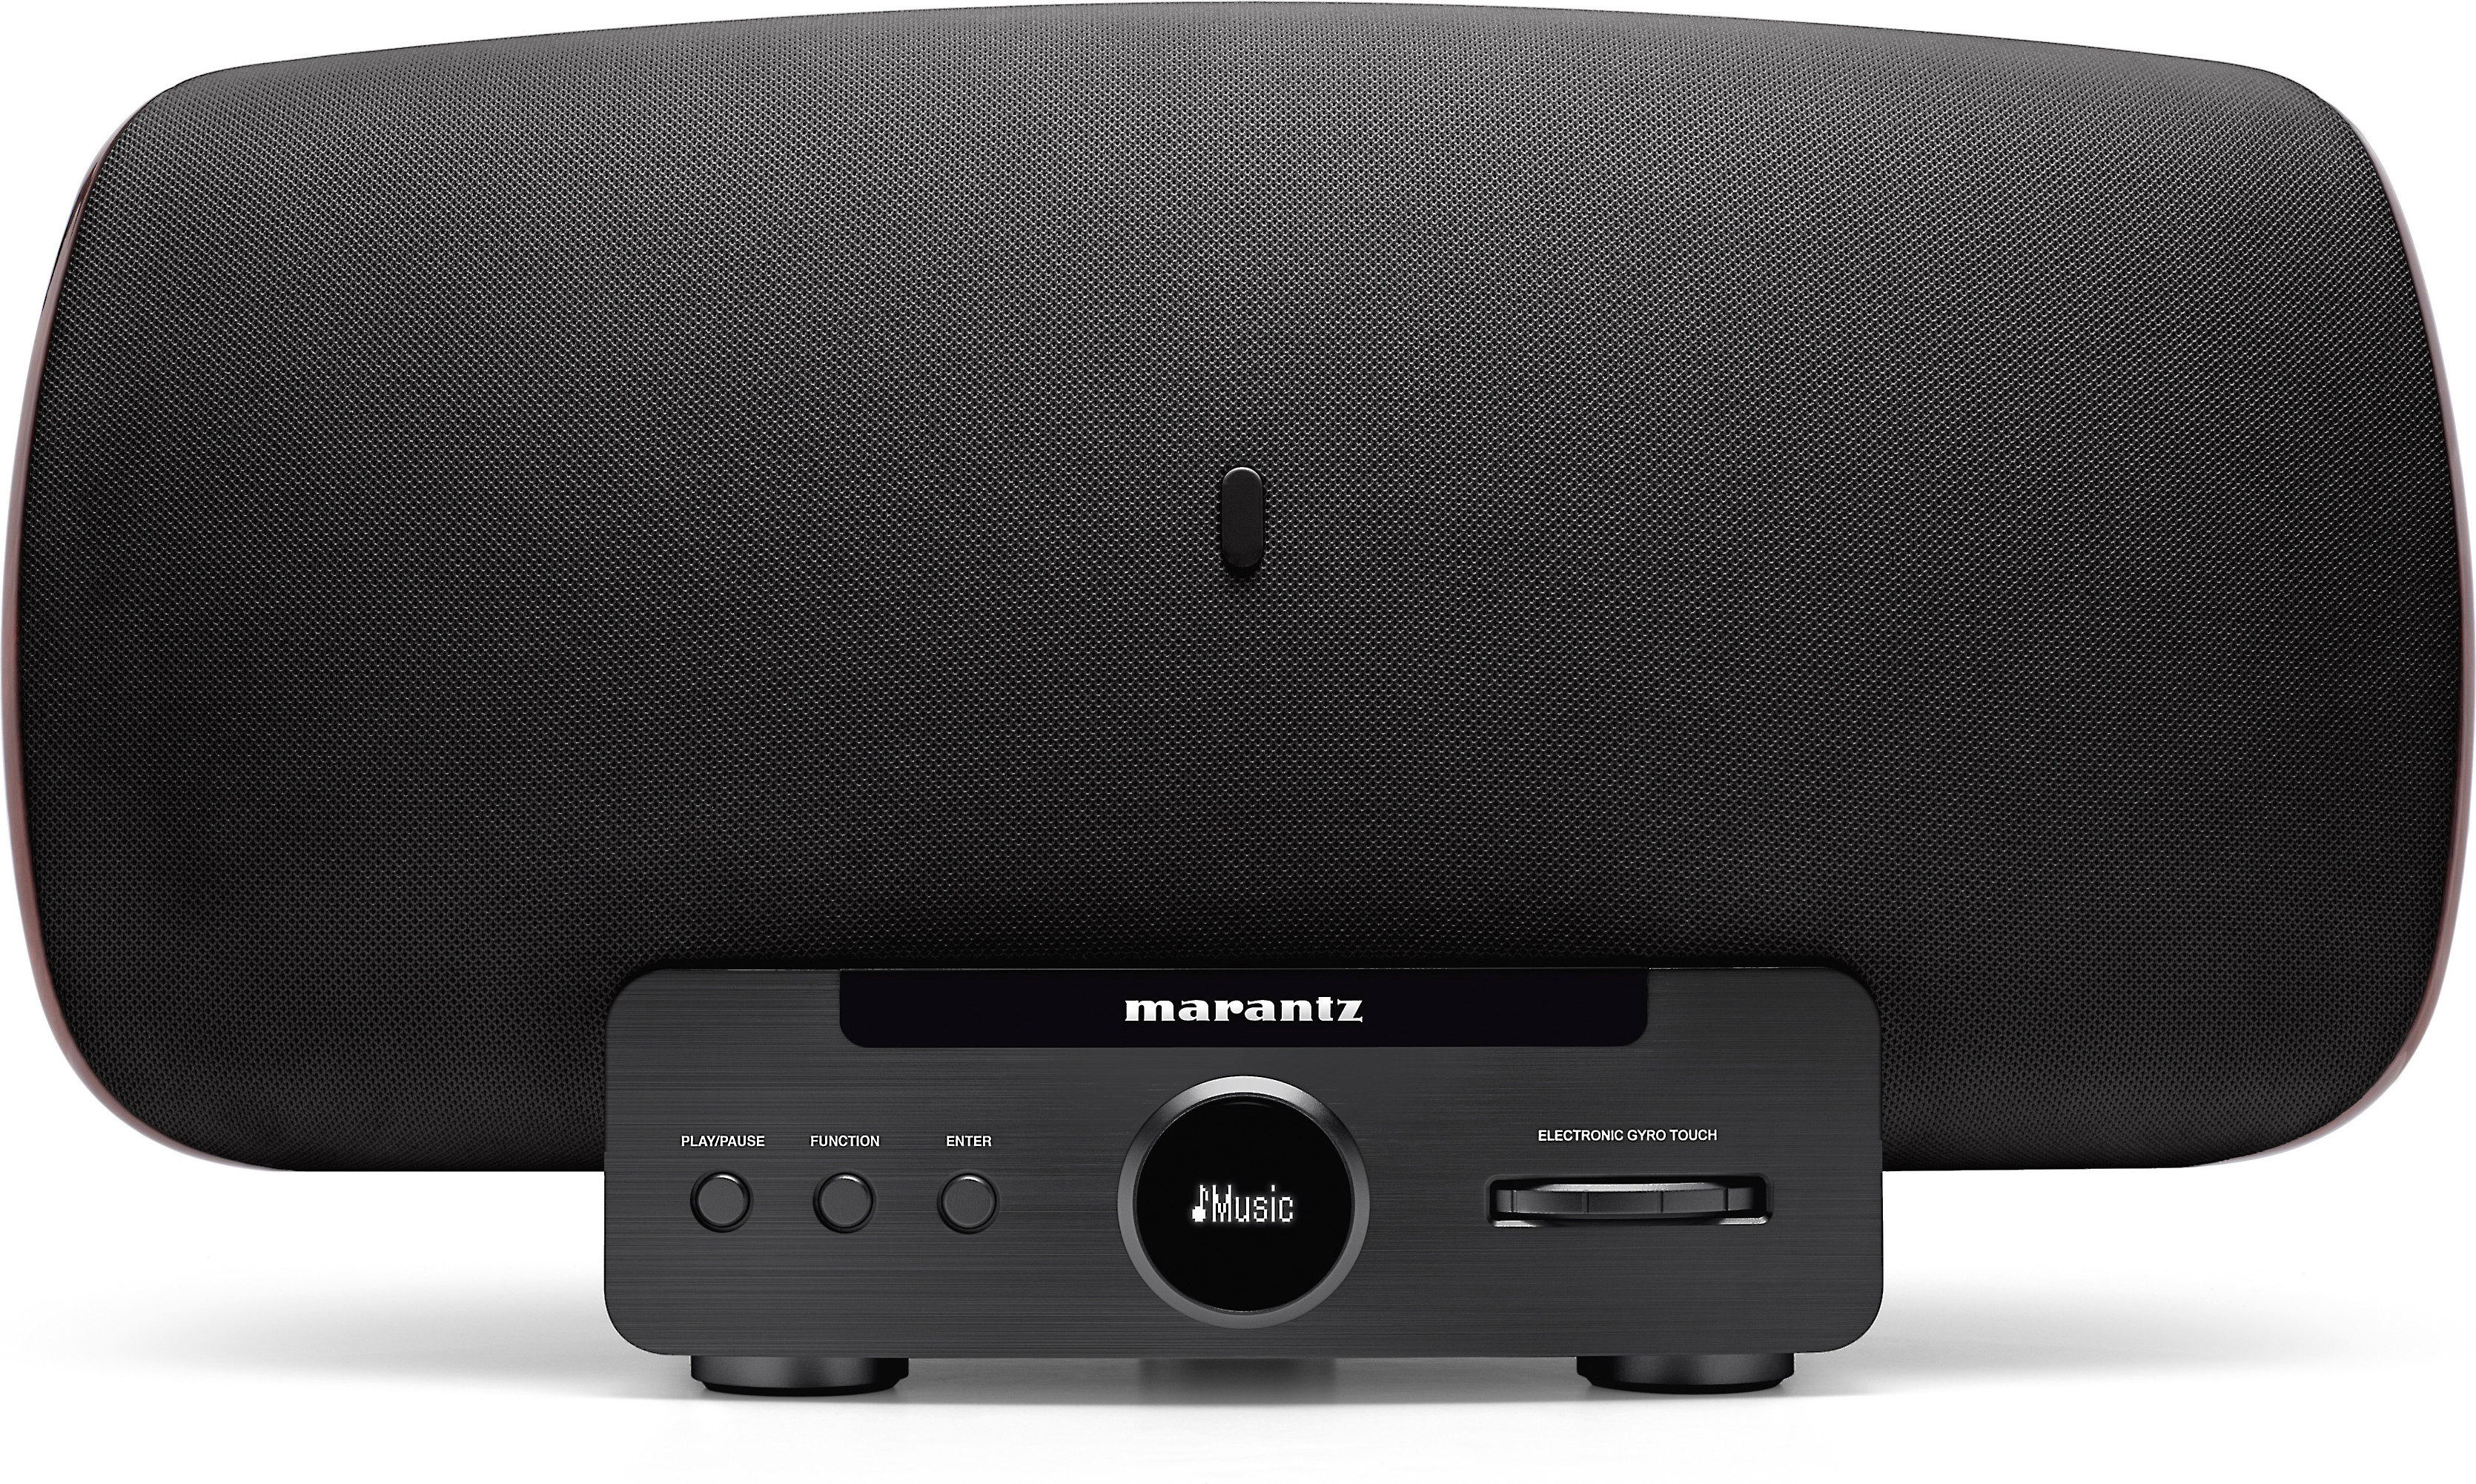 Marantz Consolette (Black) Powered Speaker System With Apple® Airplay® And Ipod®/Iphone®/Ipad® Dock At Crutchfield